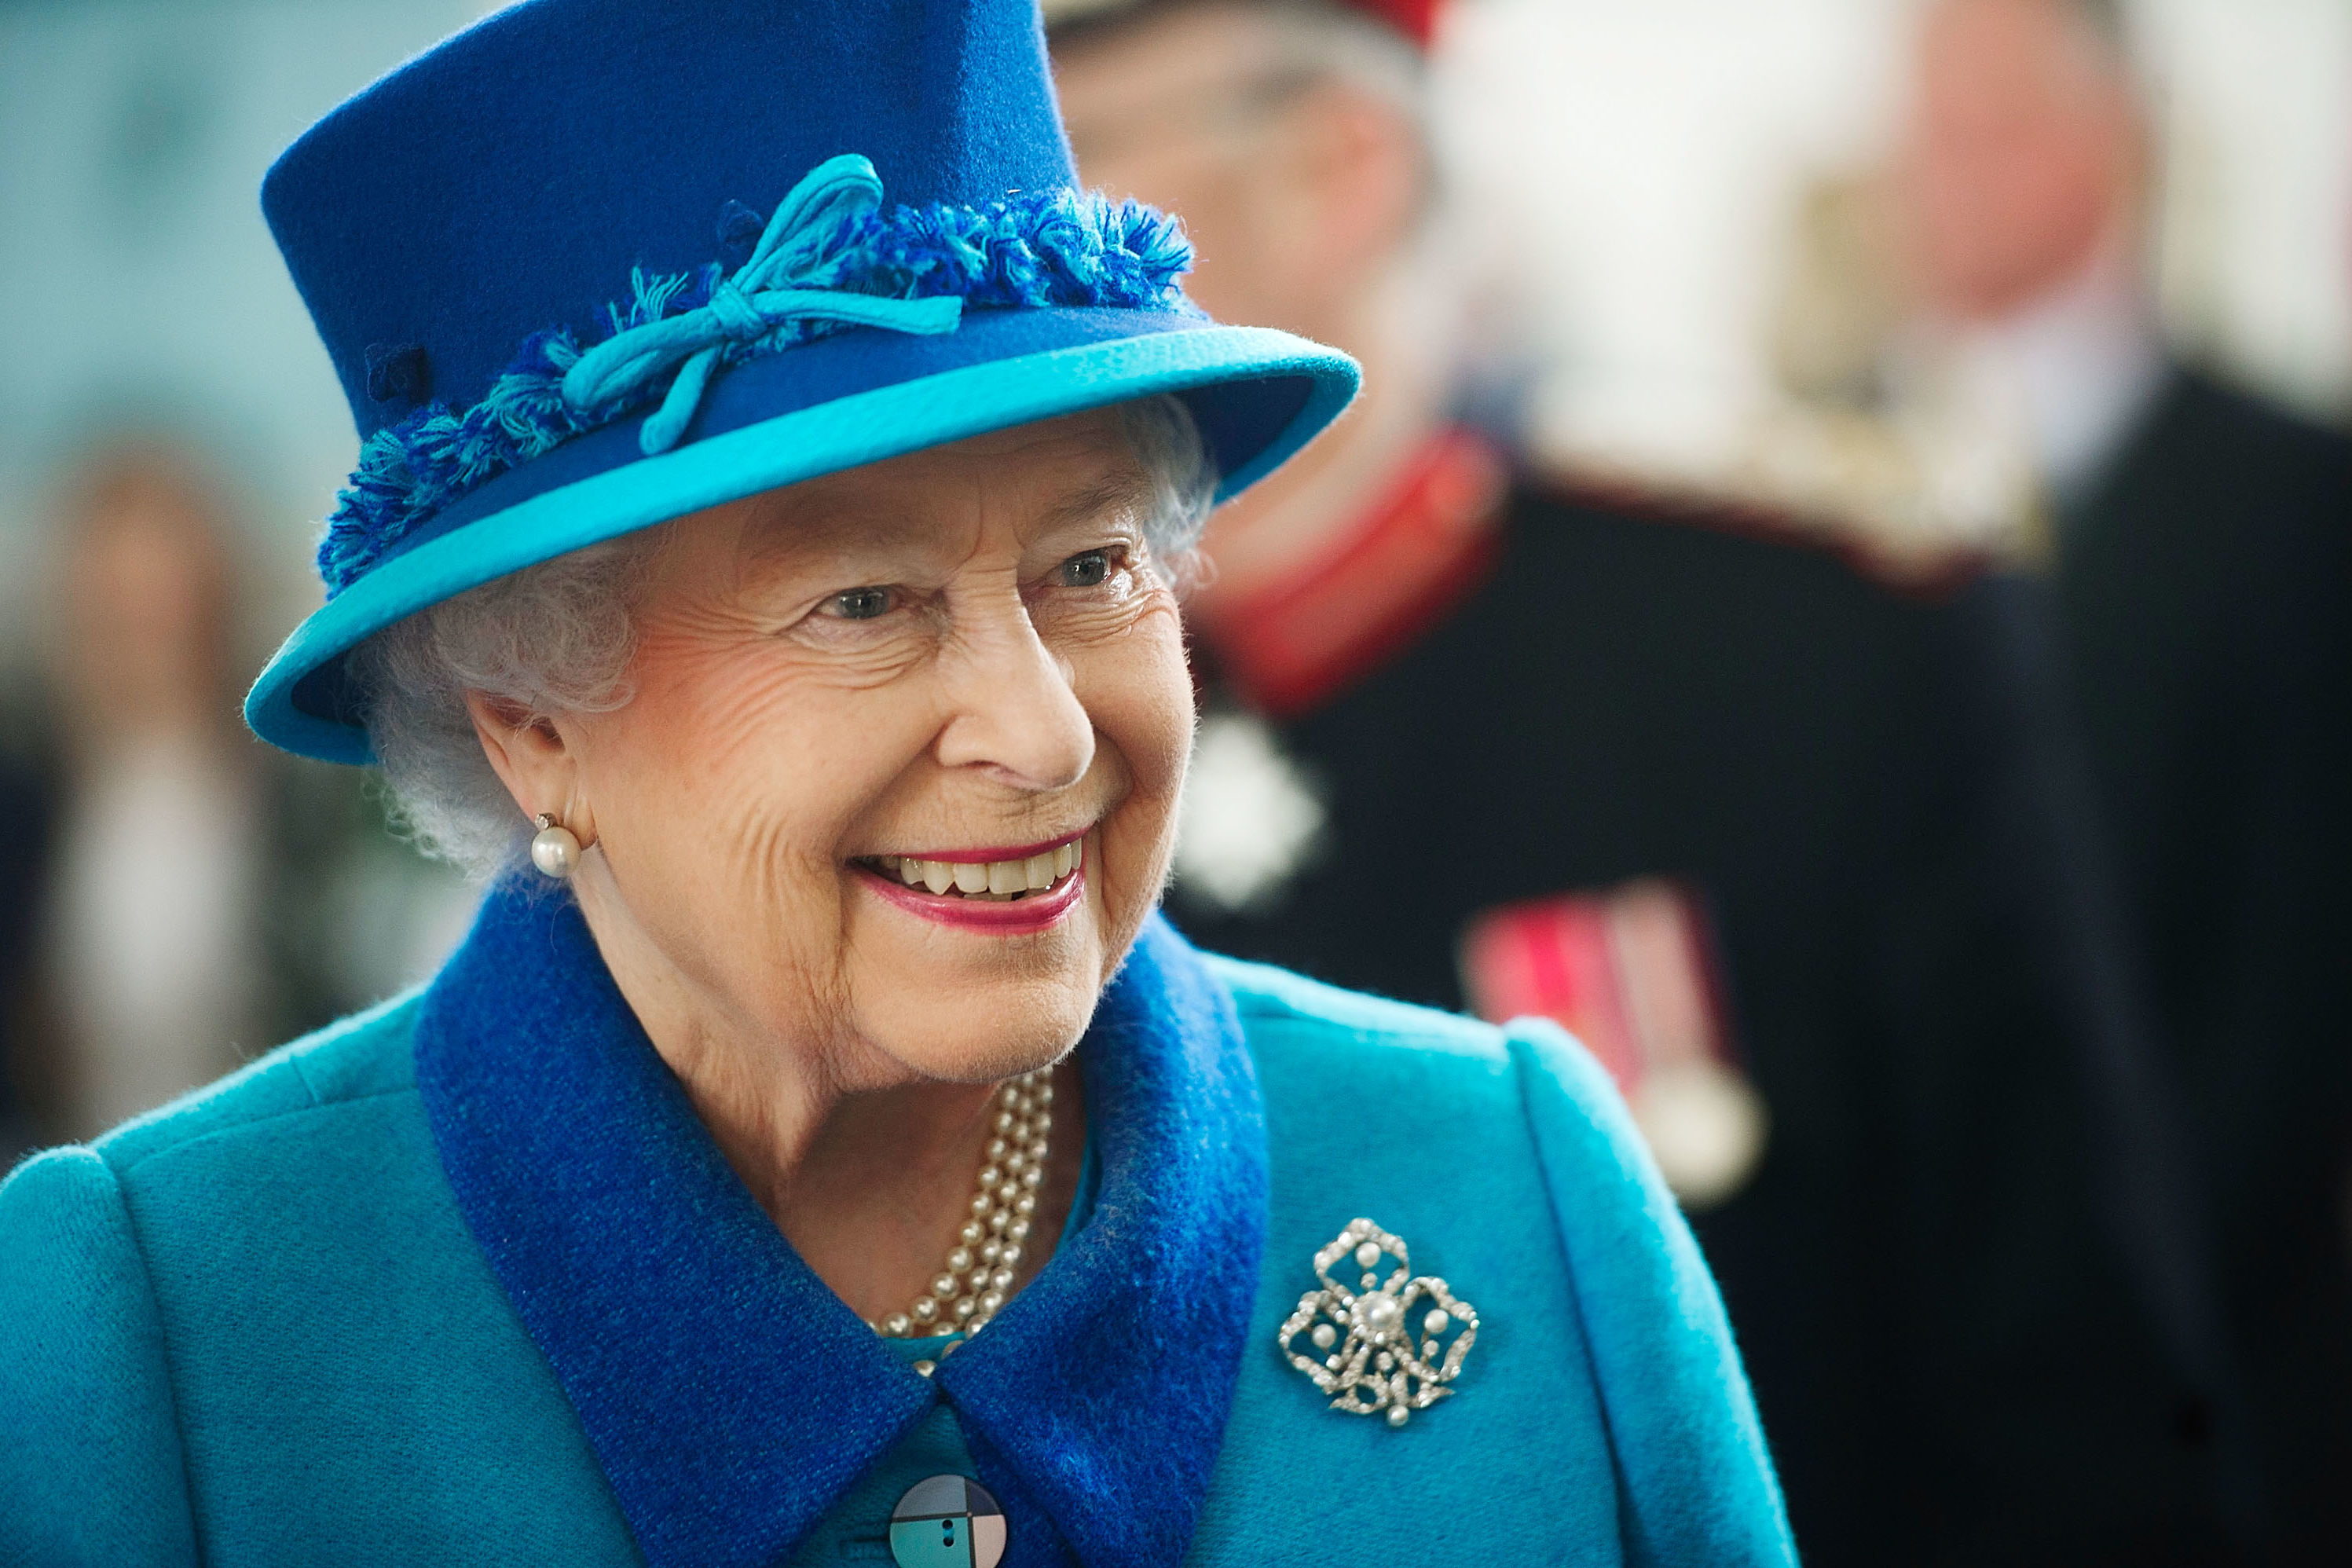 What Is Queen Elizabeth's Last Name?